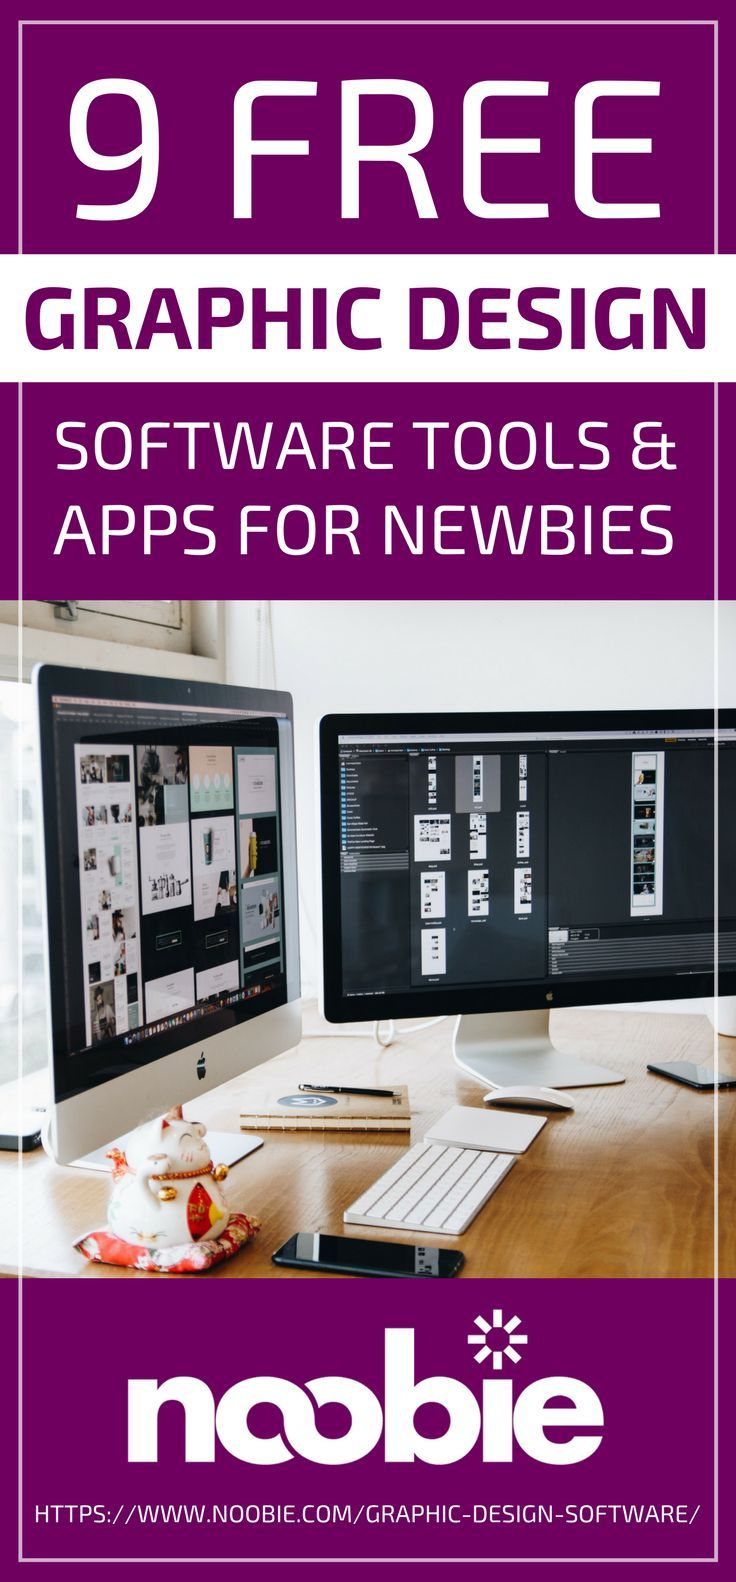 Free Graphic Design Software Tools & Apps For Newbies